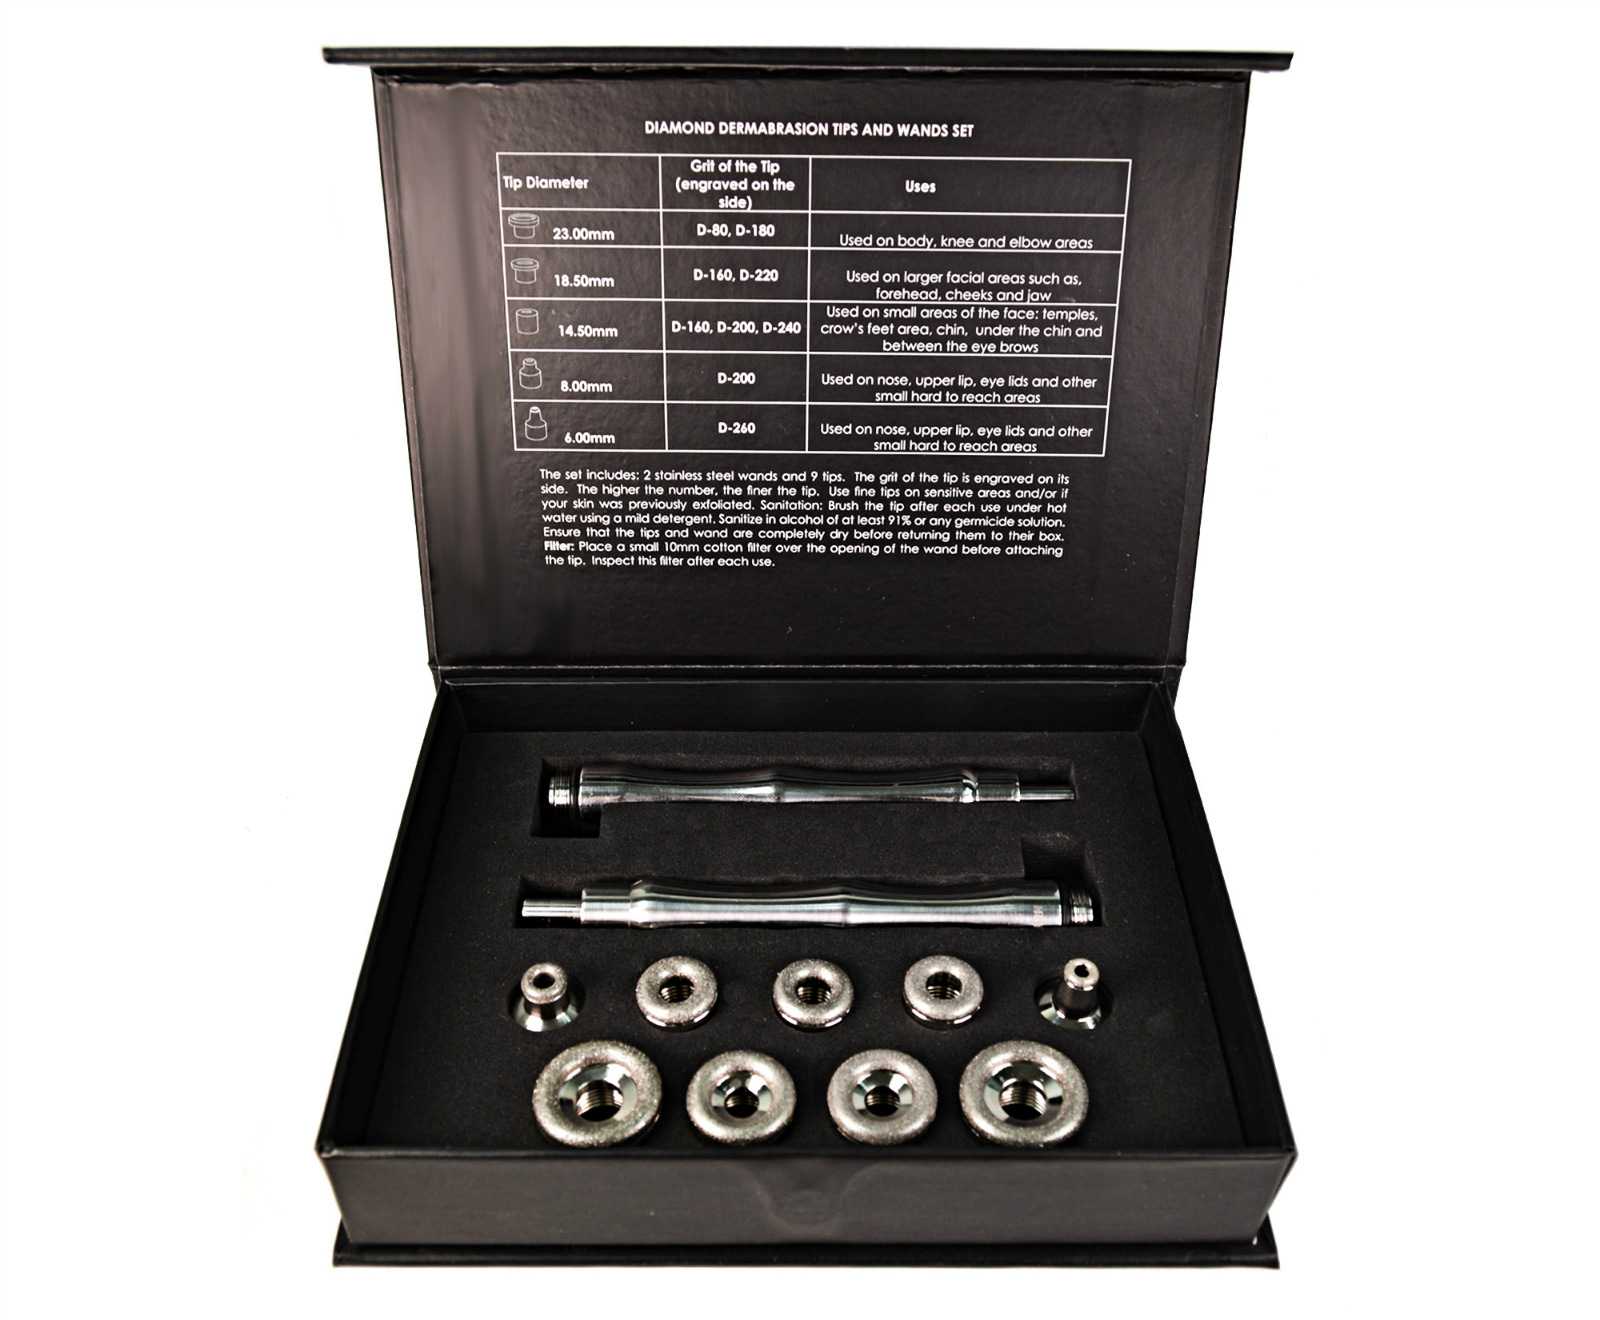 Diamond microdermabrasion tips and wands set. 9 ti